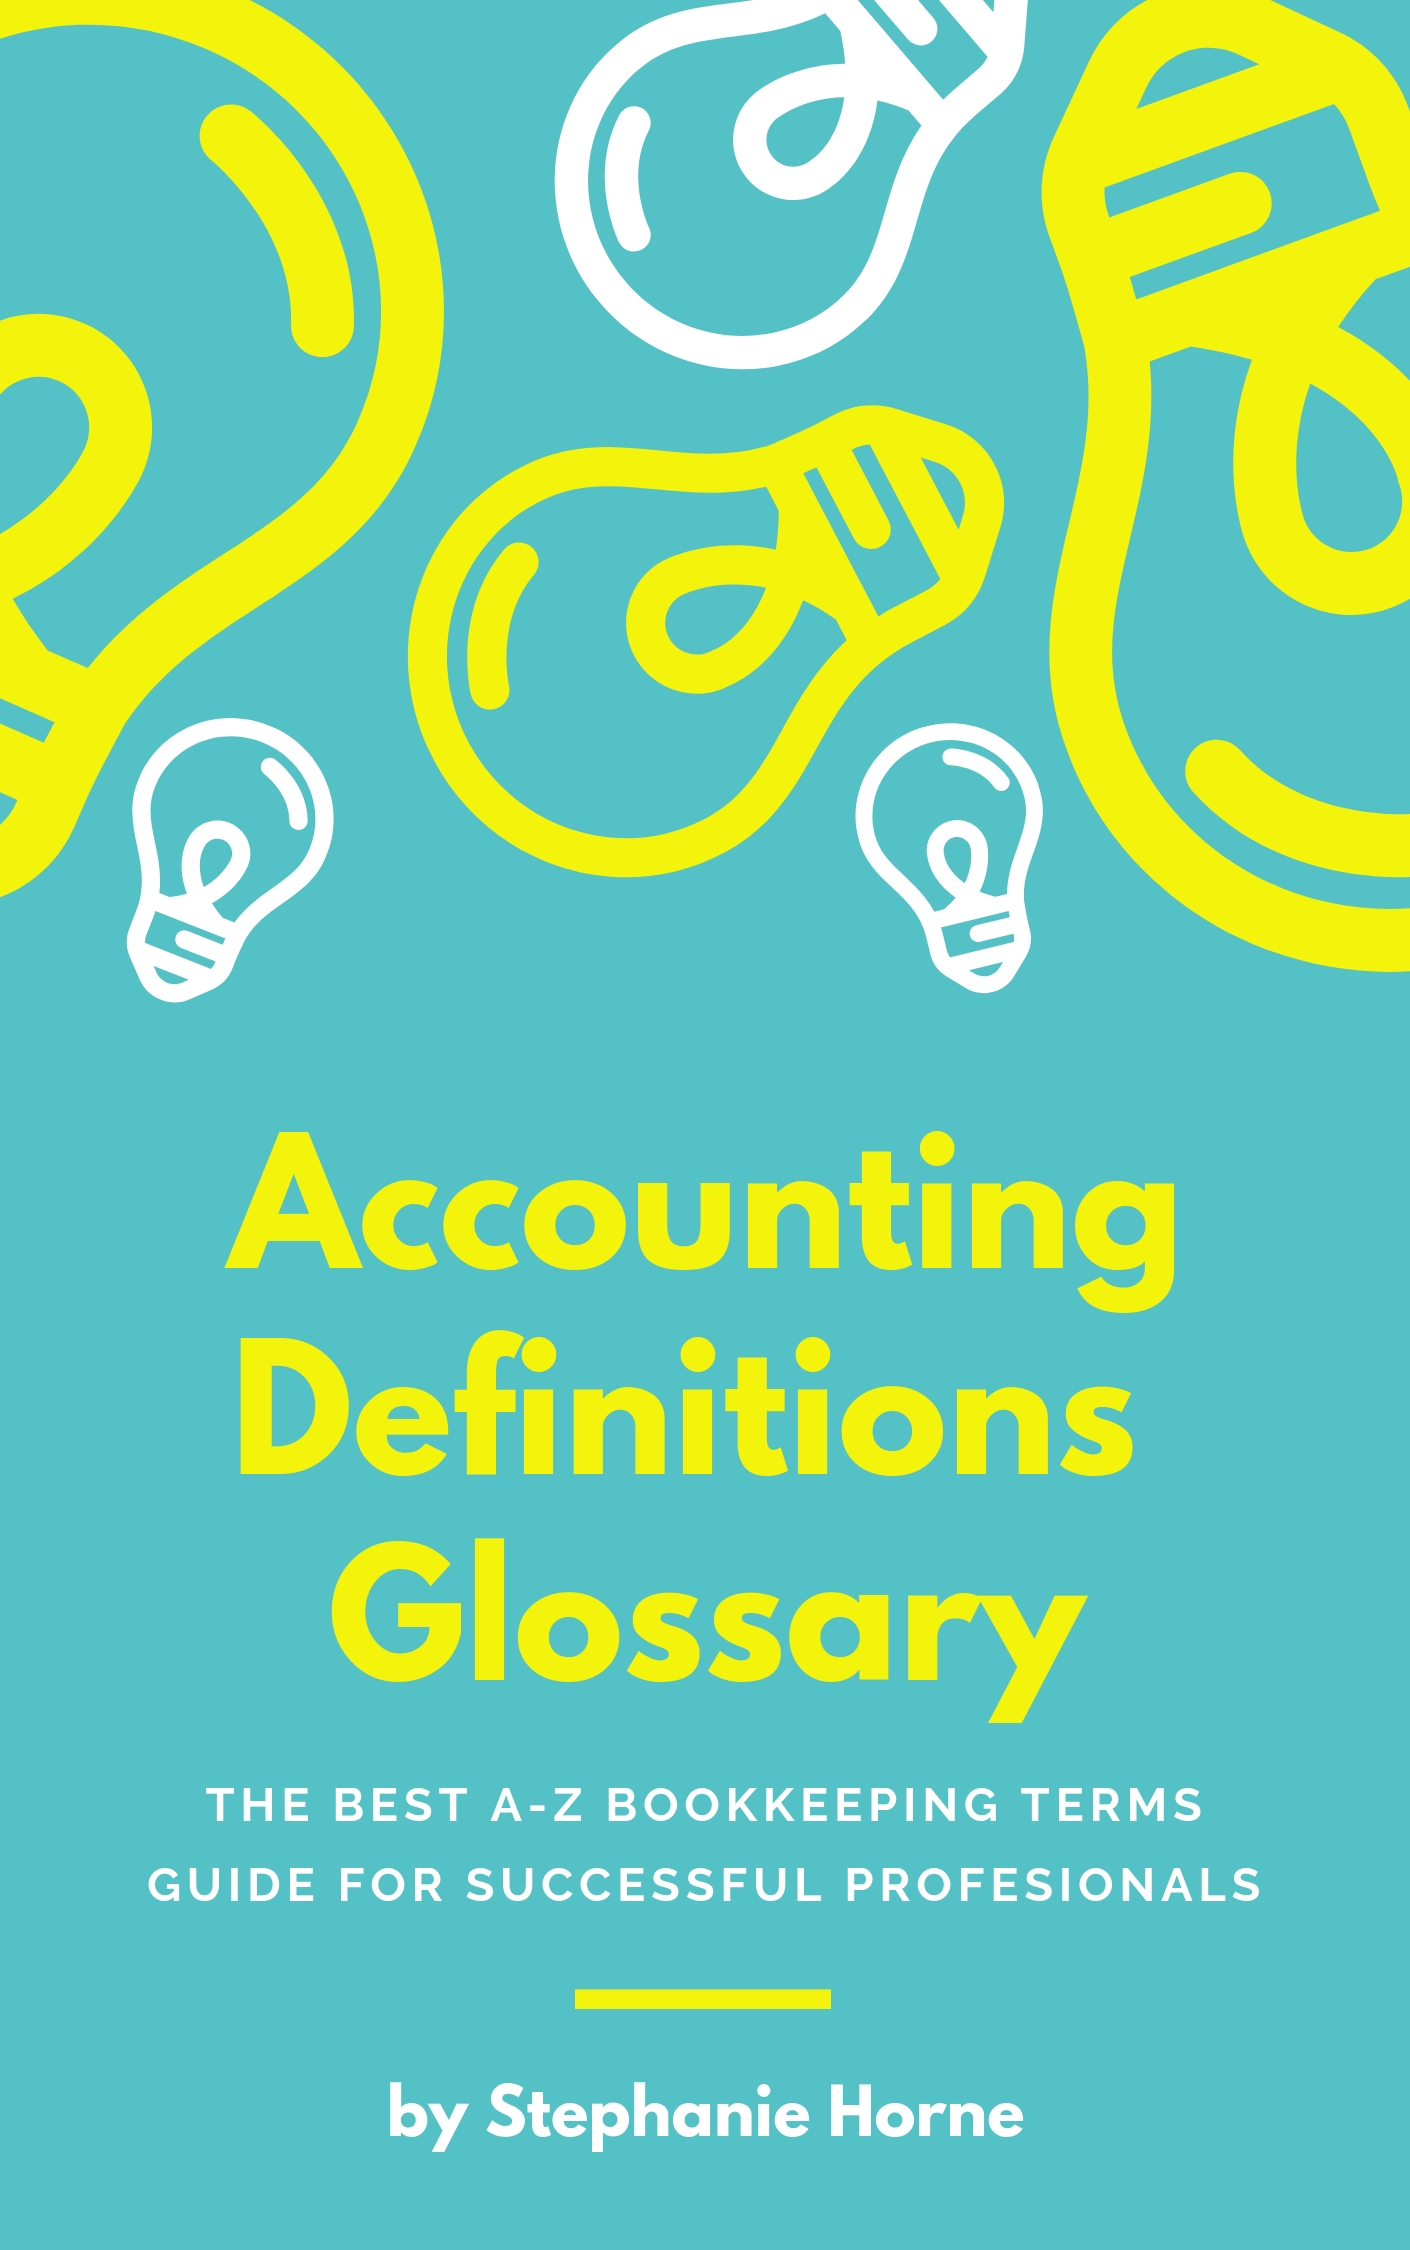 Accounting Definitions Glossary